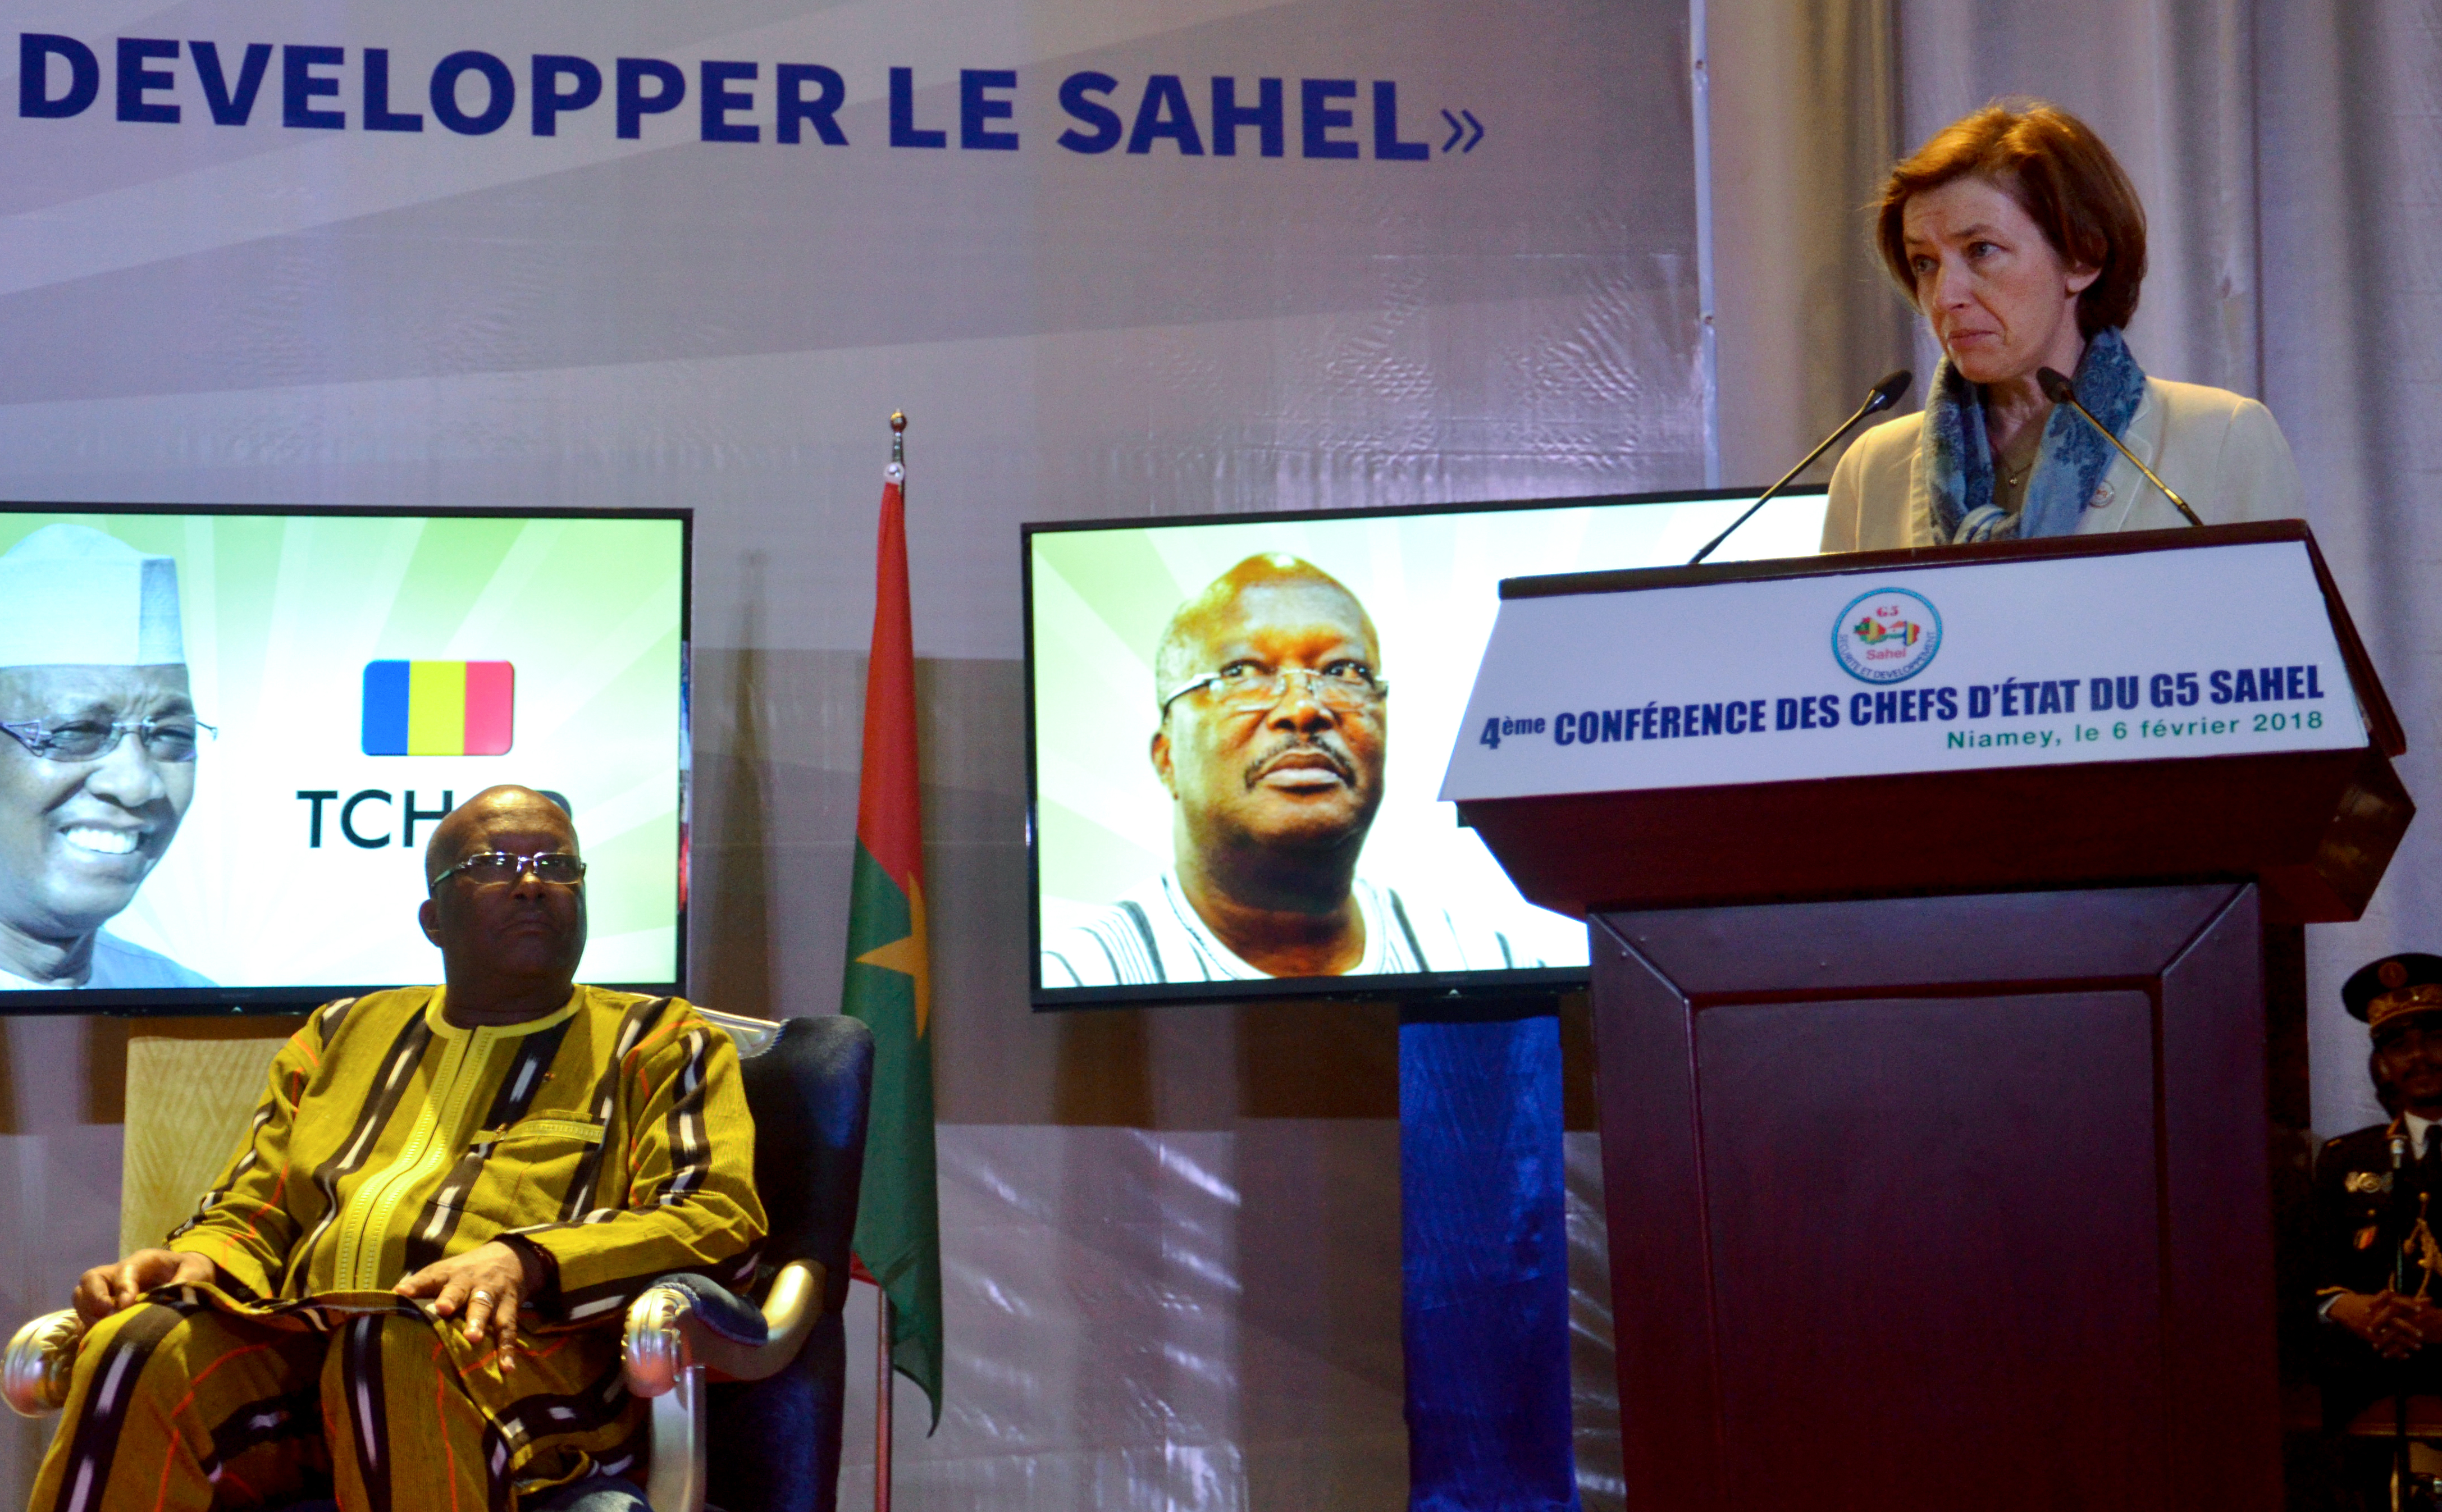 French Defense Minister Florence Parly, right,  delivers a speech next to Burkina Faso's President Roch Marc Christian Kabore, during a G5 Sahel summit in Niamey, Niger on Feb. 6, 2018.